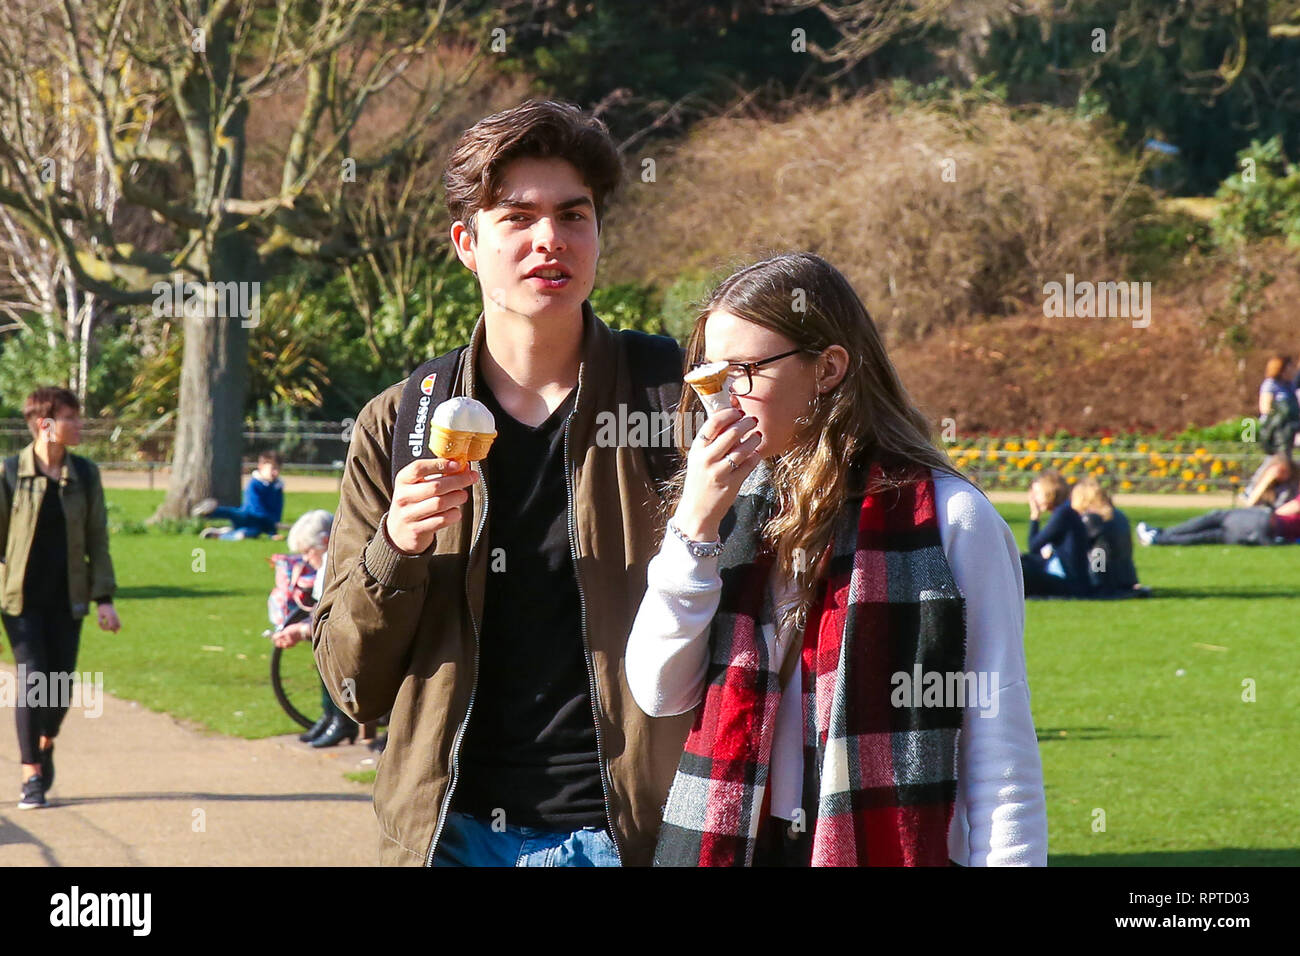 A couple are seen eating ice cream on a warm and sunny day at St James's Park. The Met Office is predicting temperatures in the UK could break records this weekend, with high pressure from Europe bringing dry and sunny weather. - Stock Image